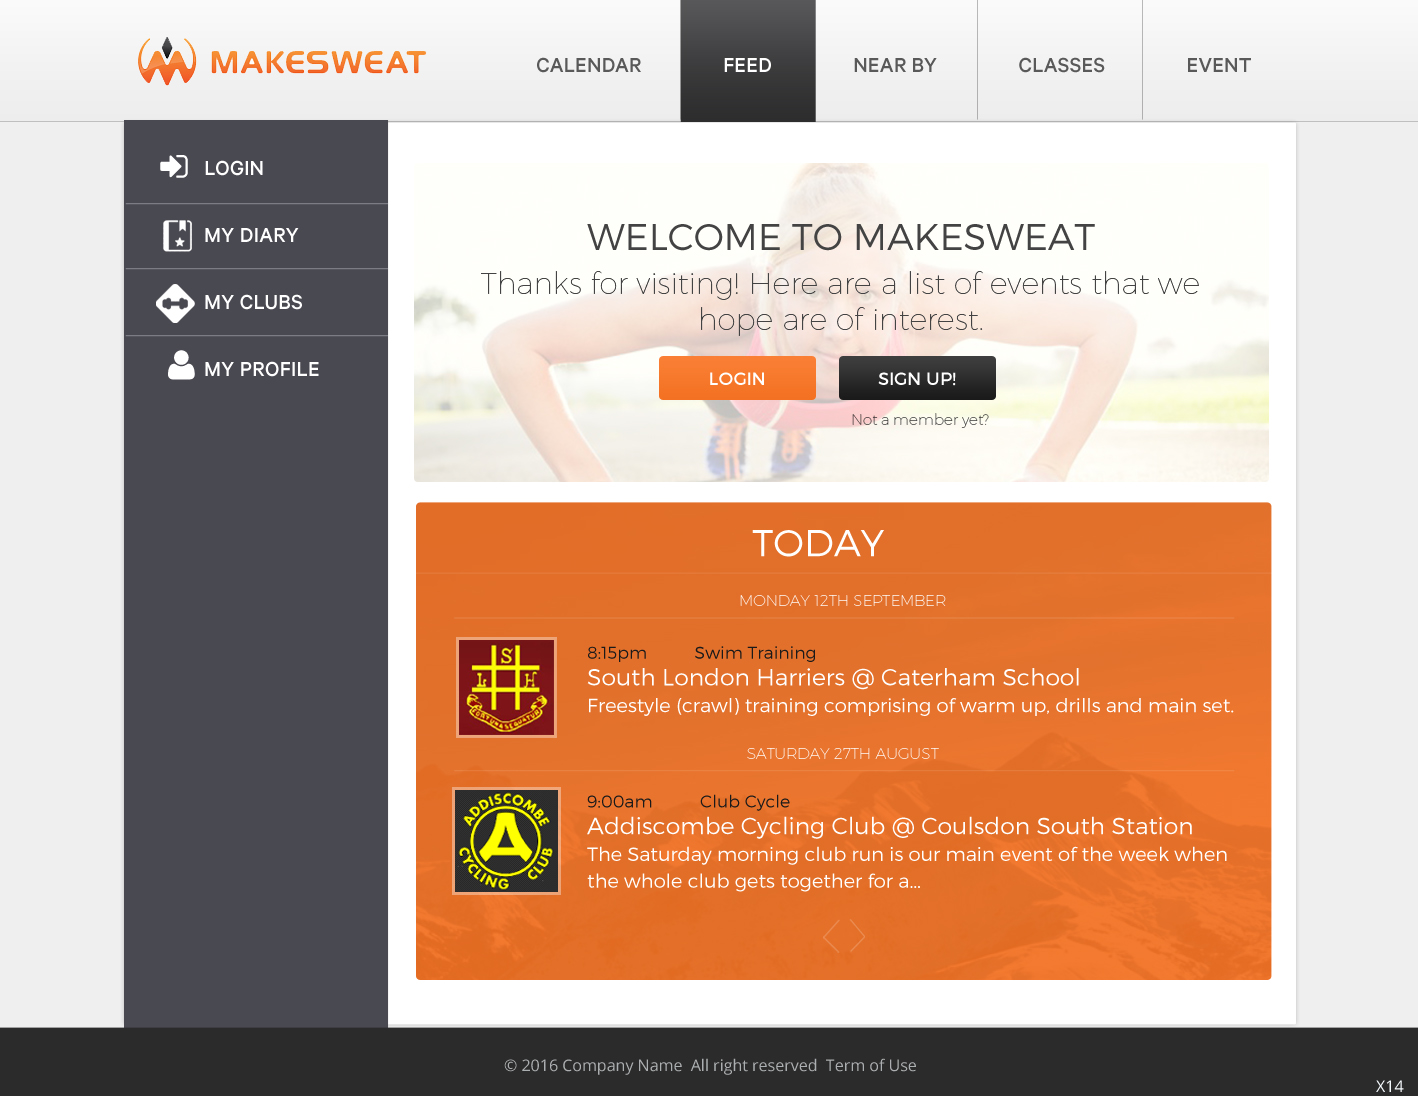 Serious Modern Health And Wellness Web Design For A Company By Pb Design 12024869